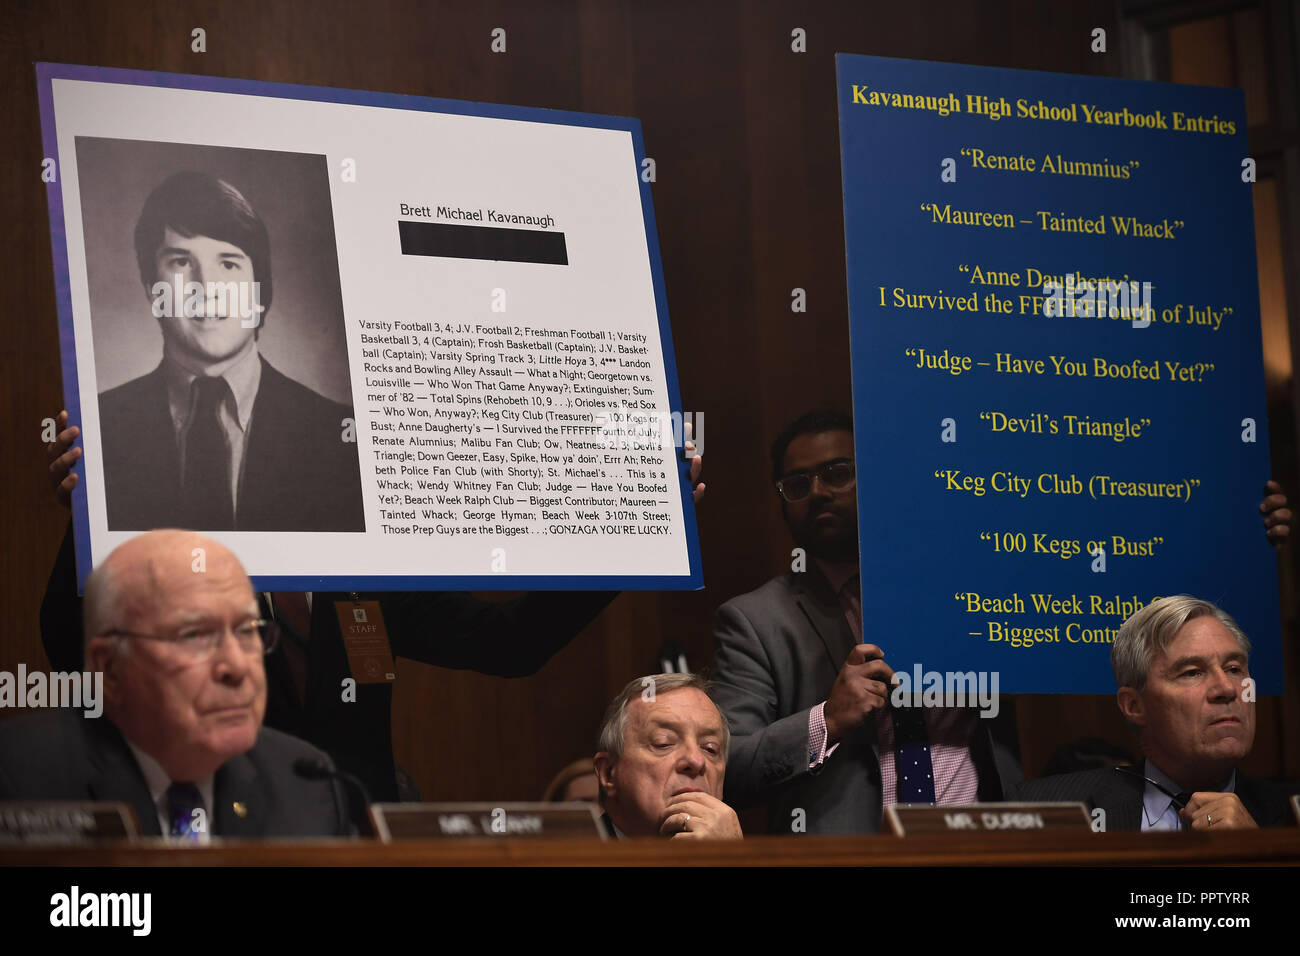 Washington, USA. 27th Sep, 2018. Extracts of his high school yearbook are displayed as Supreme Court nominee Brett Kavanaugh testifies before the US Senate Judiciary Committee on Capitol Hill in Washington, DC, September 27, 2018. Credit: Pool/CNP/AdMedia/Newscom/Alamy Live News Credit: Newscom/Alamy Live News Stock Photo